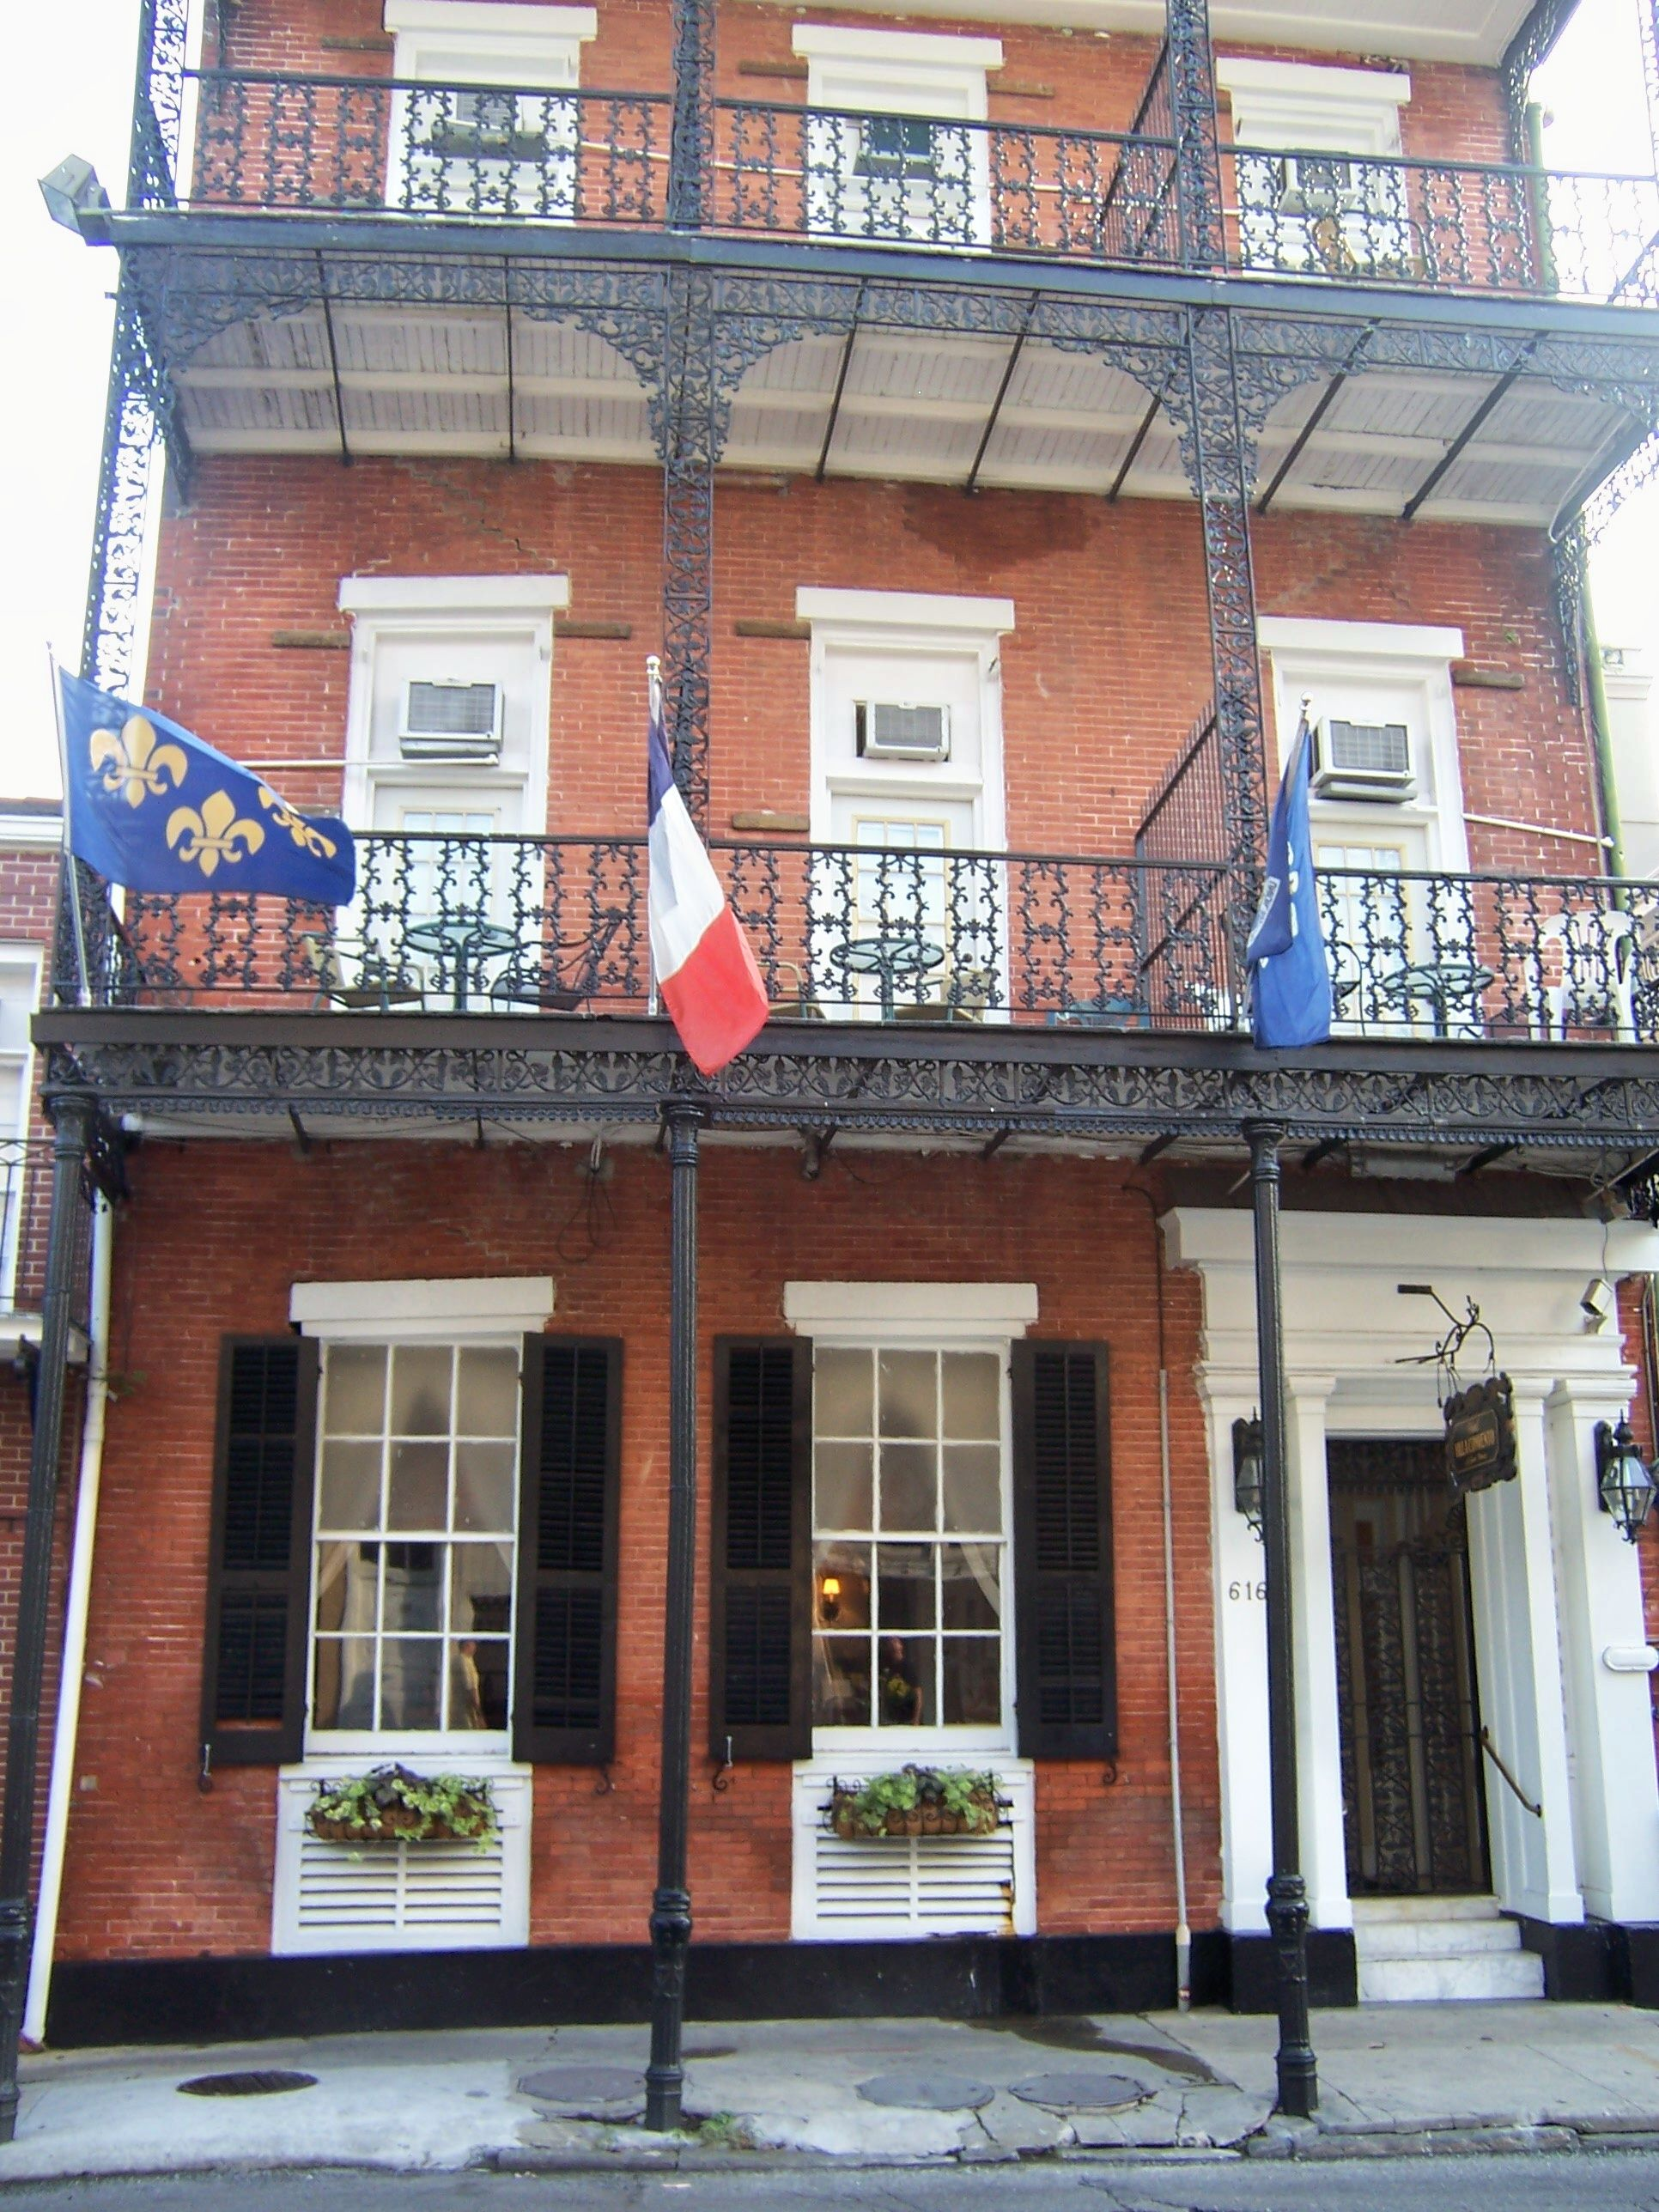 hotel villa convento new orleans our favorite place to stay said rh pinterest com where to stay in new orleans for a bachelorette party